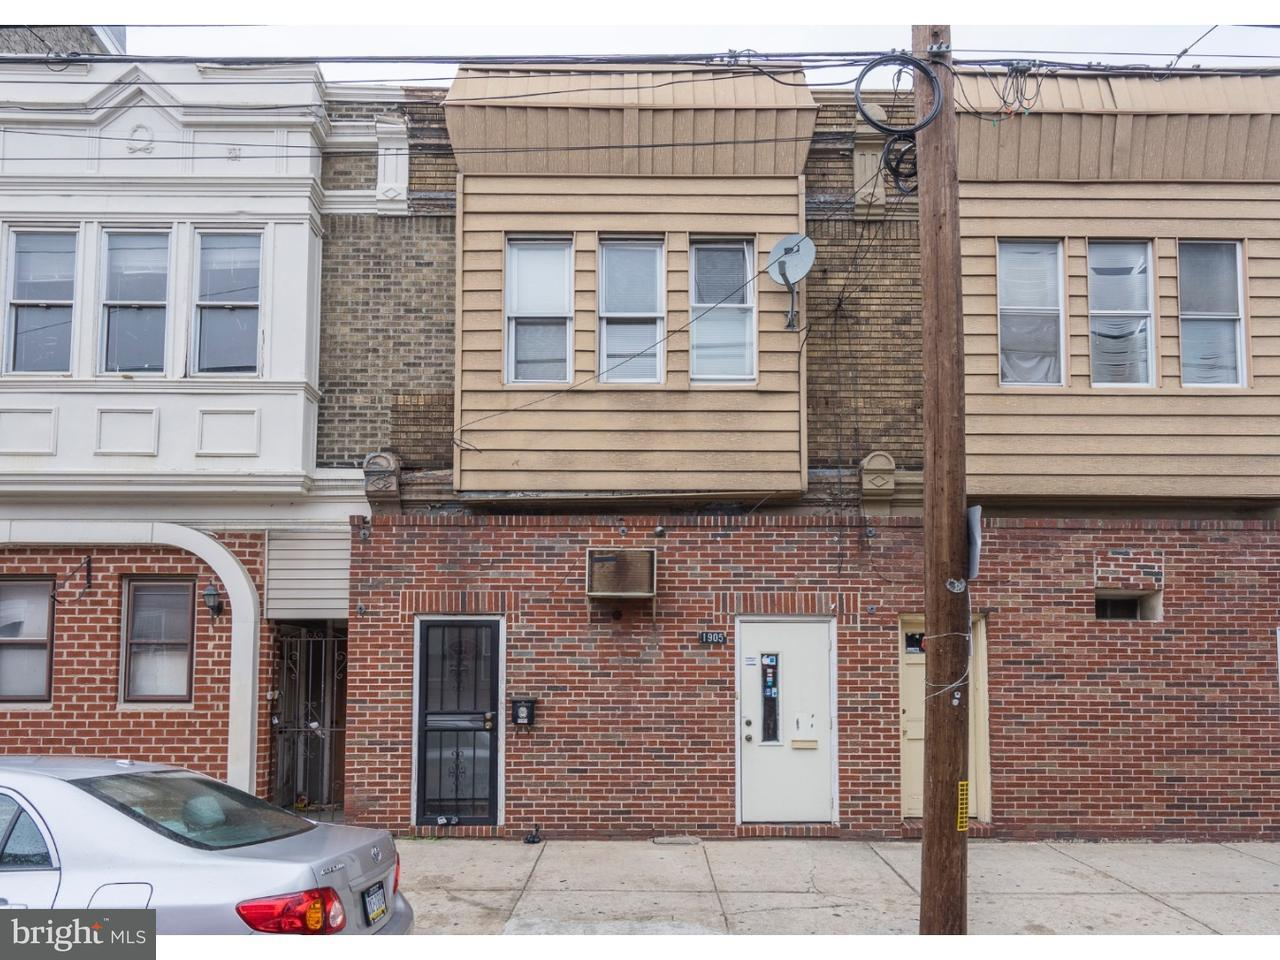 Single Family Home for Sale at 1905 FEDERAL Street Philadelphia, Pennsylvania 19146 United States